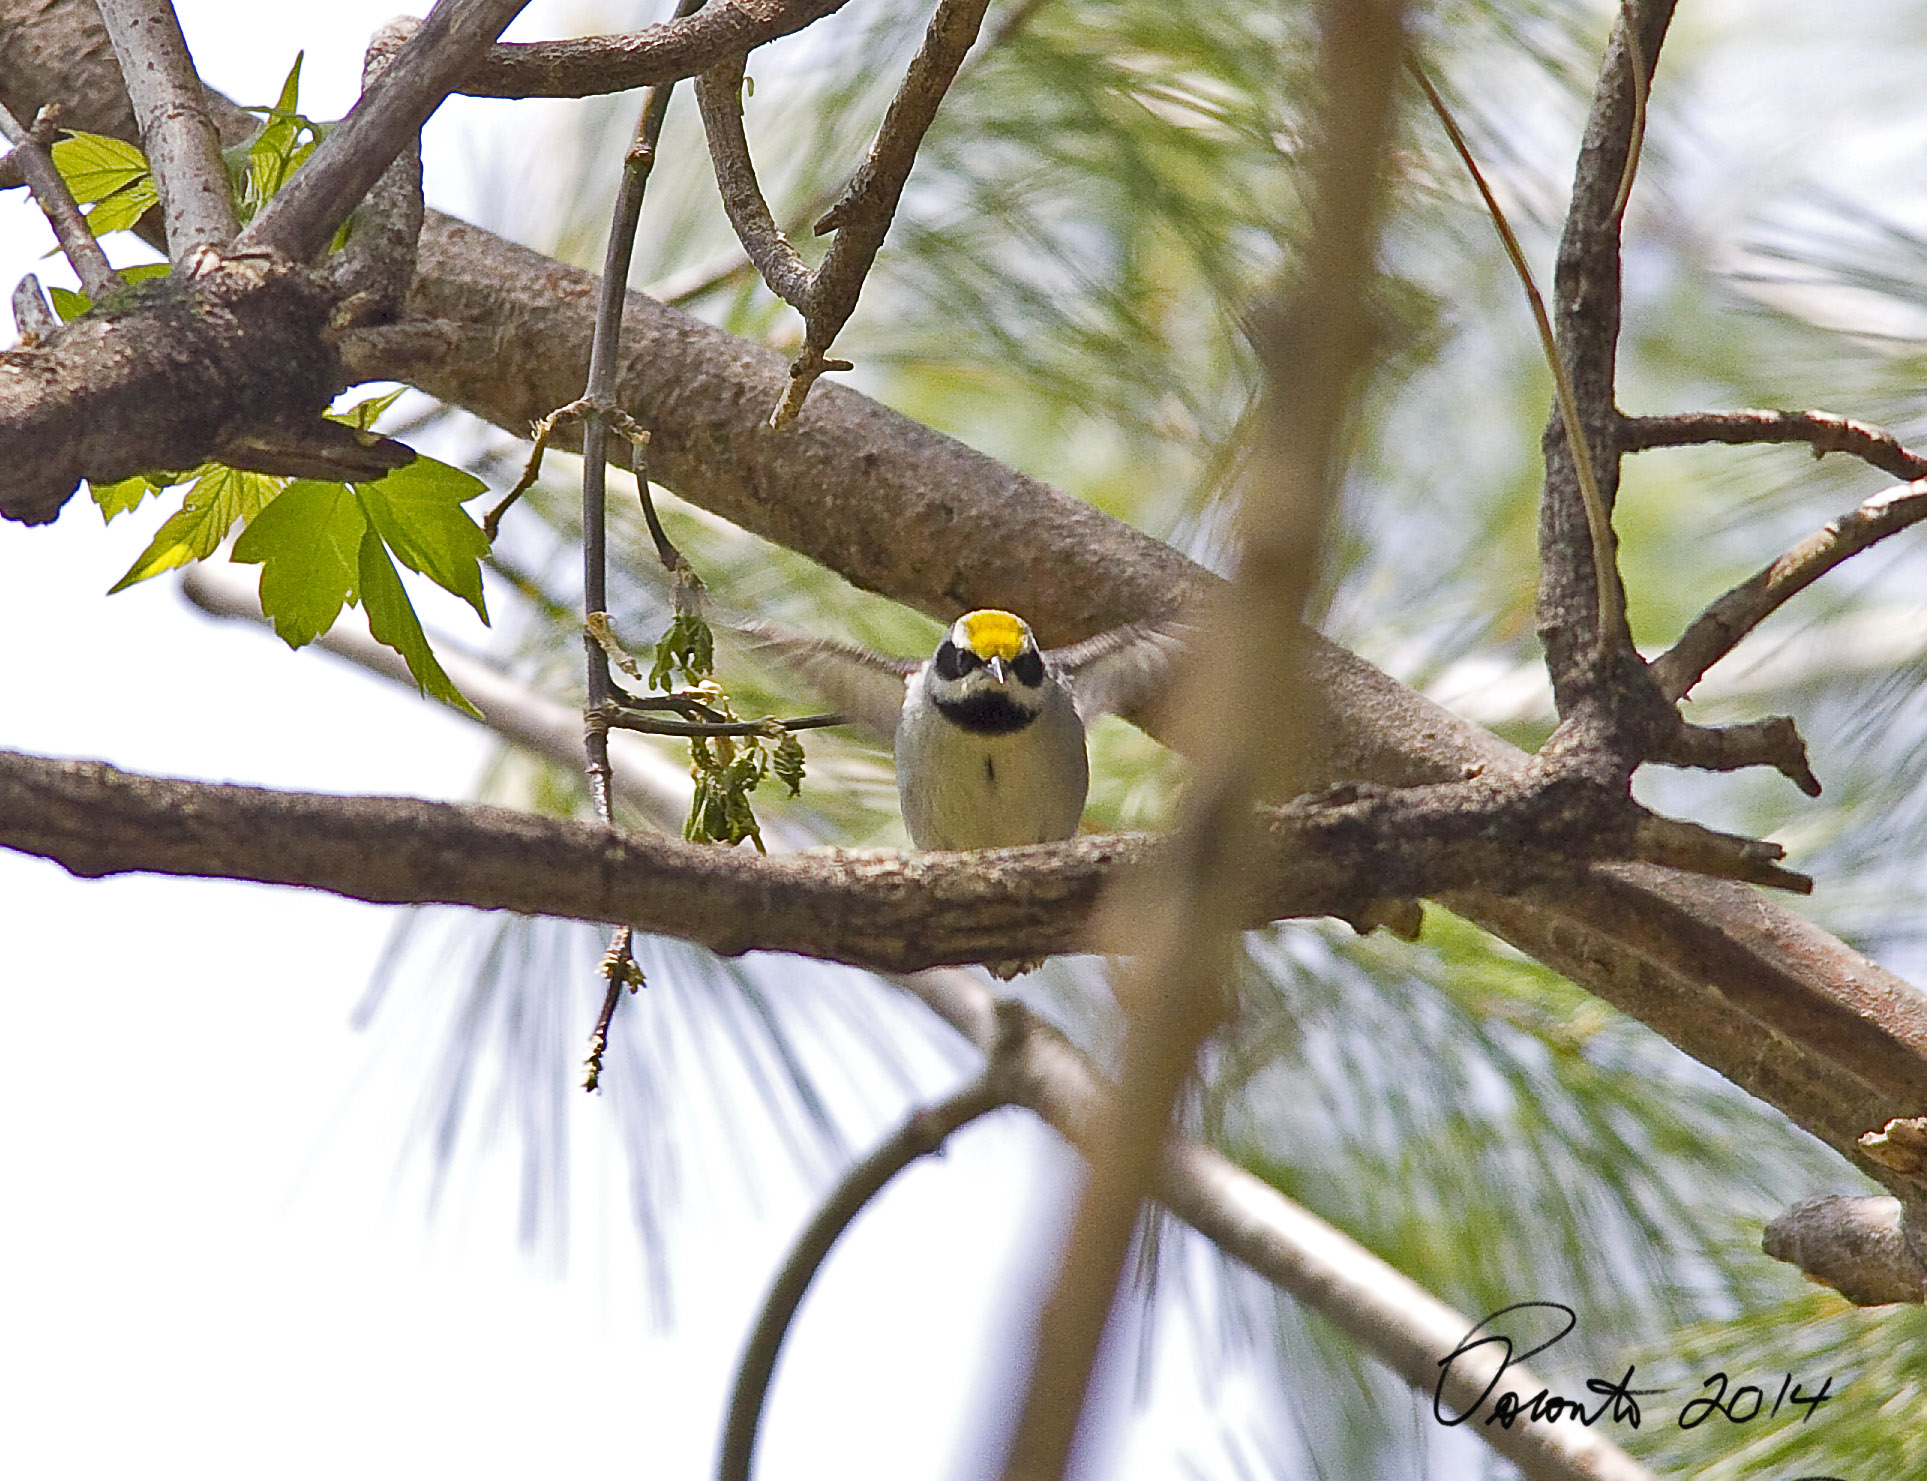 Its a bad photo, but its the only one that is good enough to post of the Golden-winged Warbler